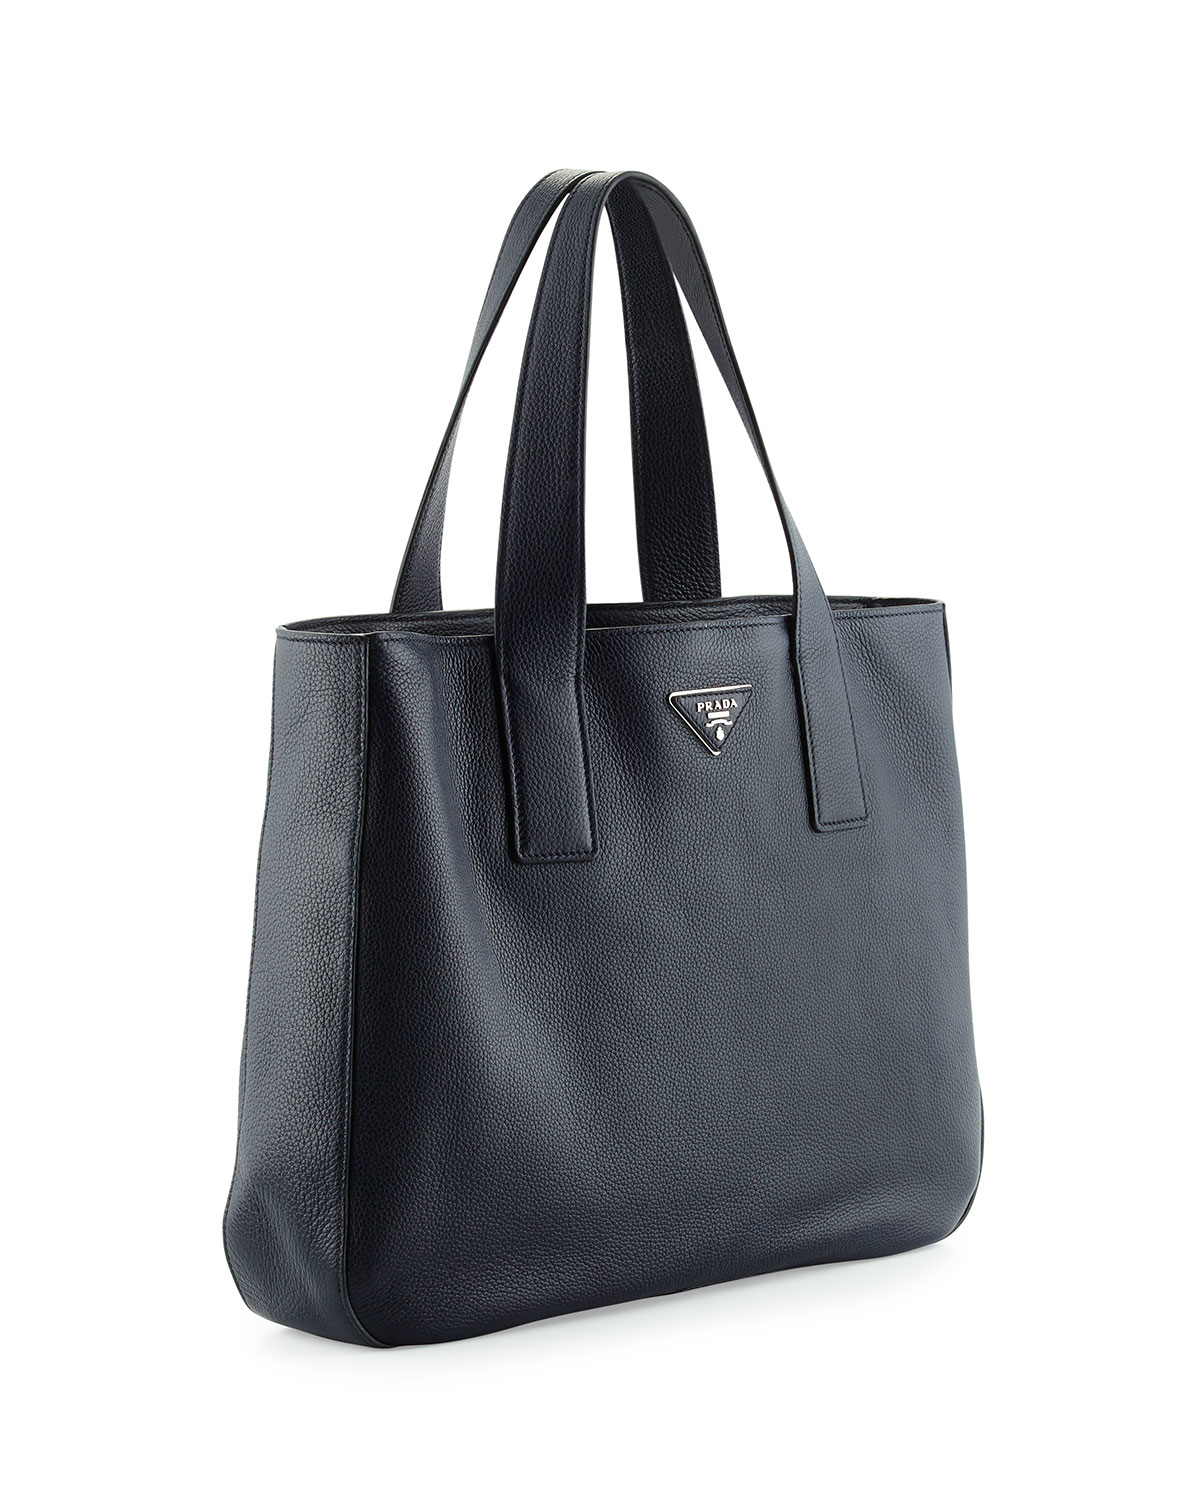 prada light brown leather tote bag